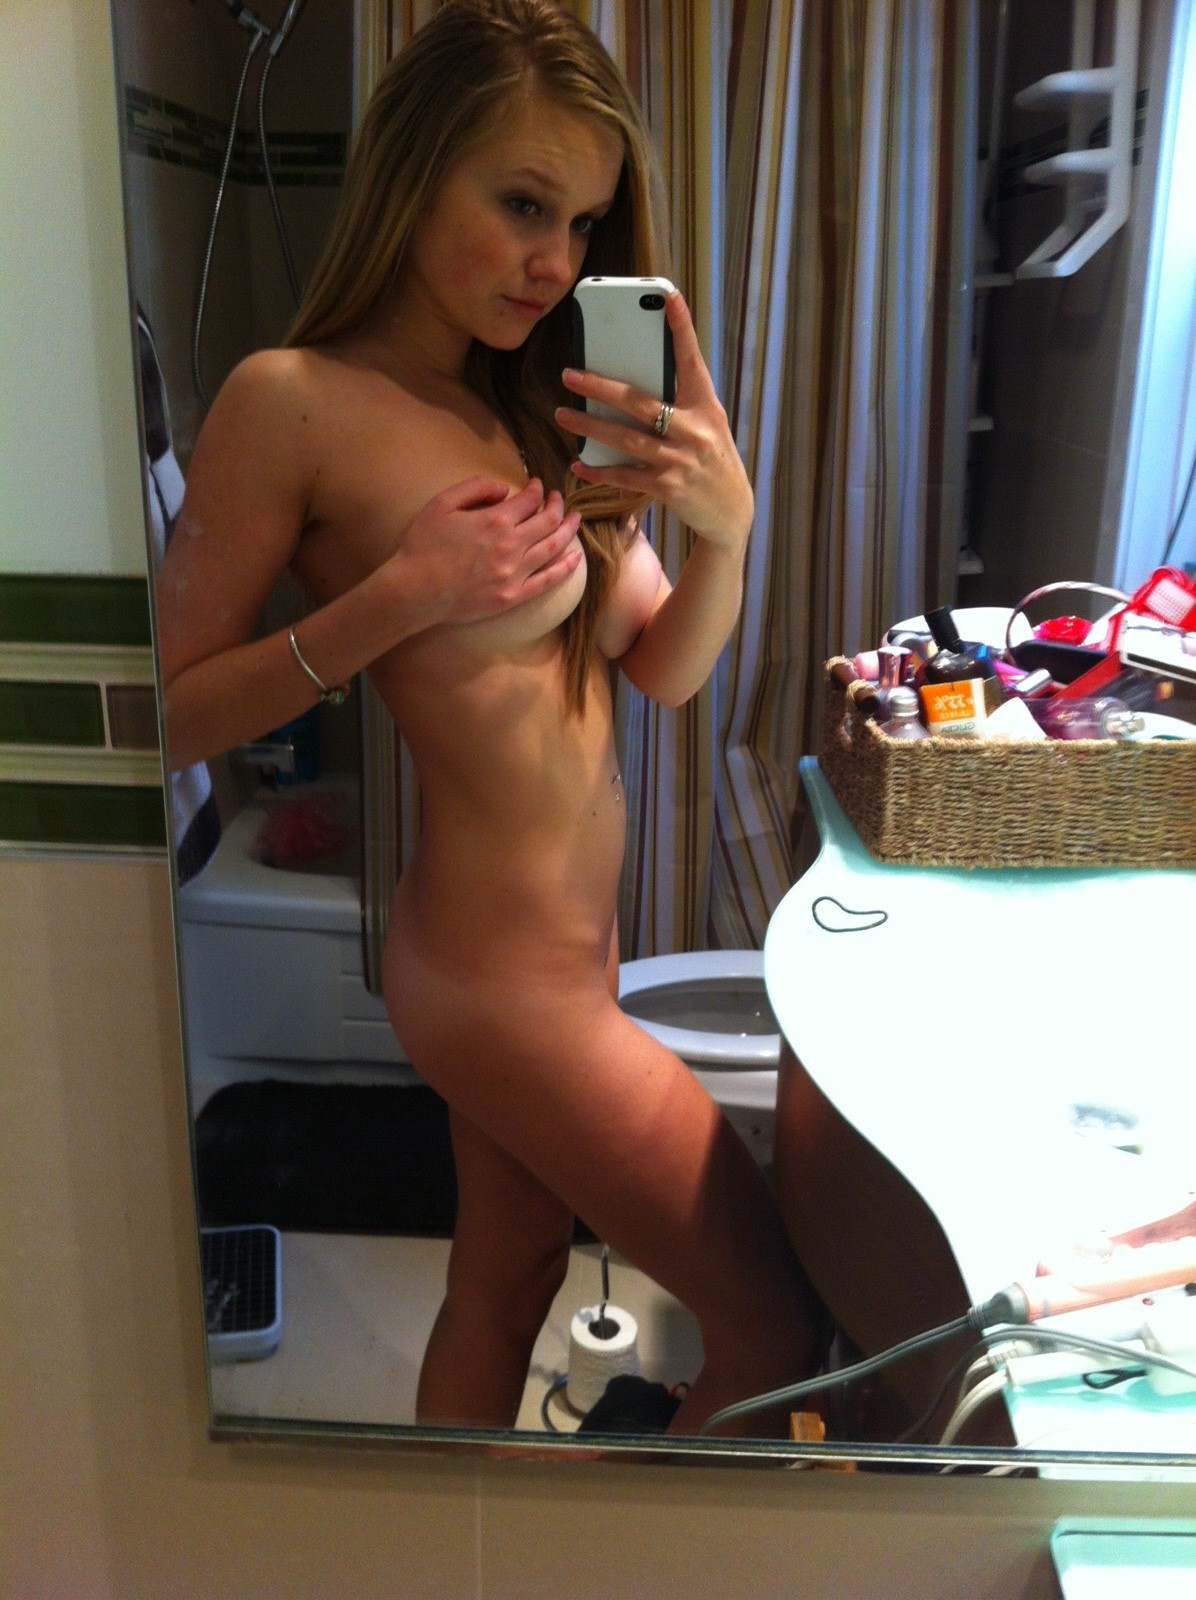 threesome orgy porn amateur sex videos and cuckold homemade exgf pics